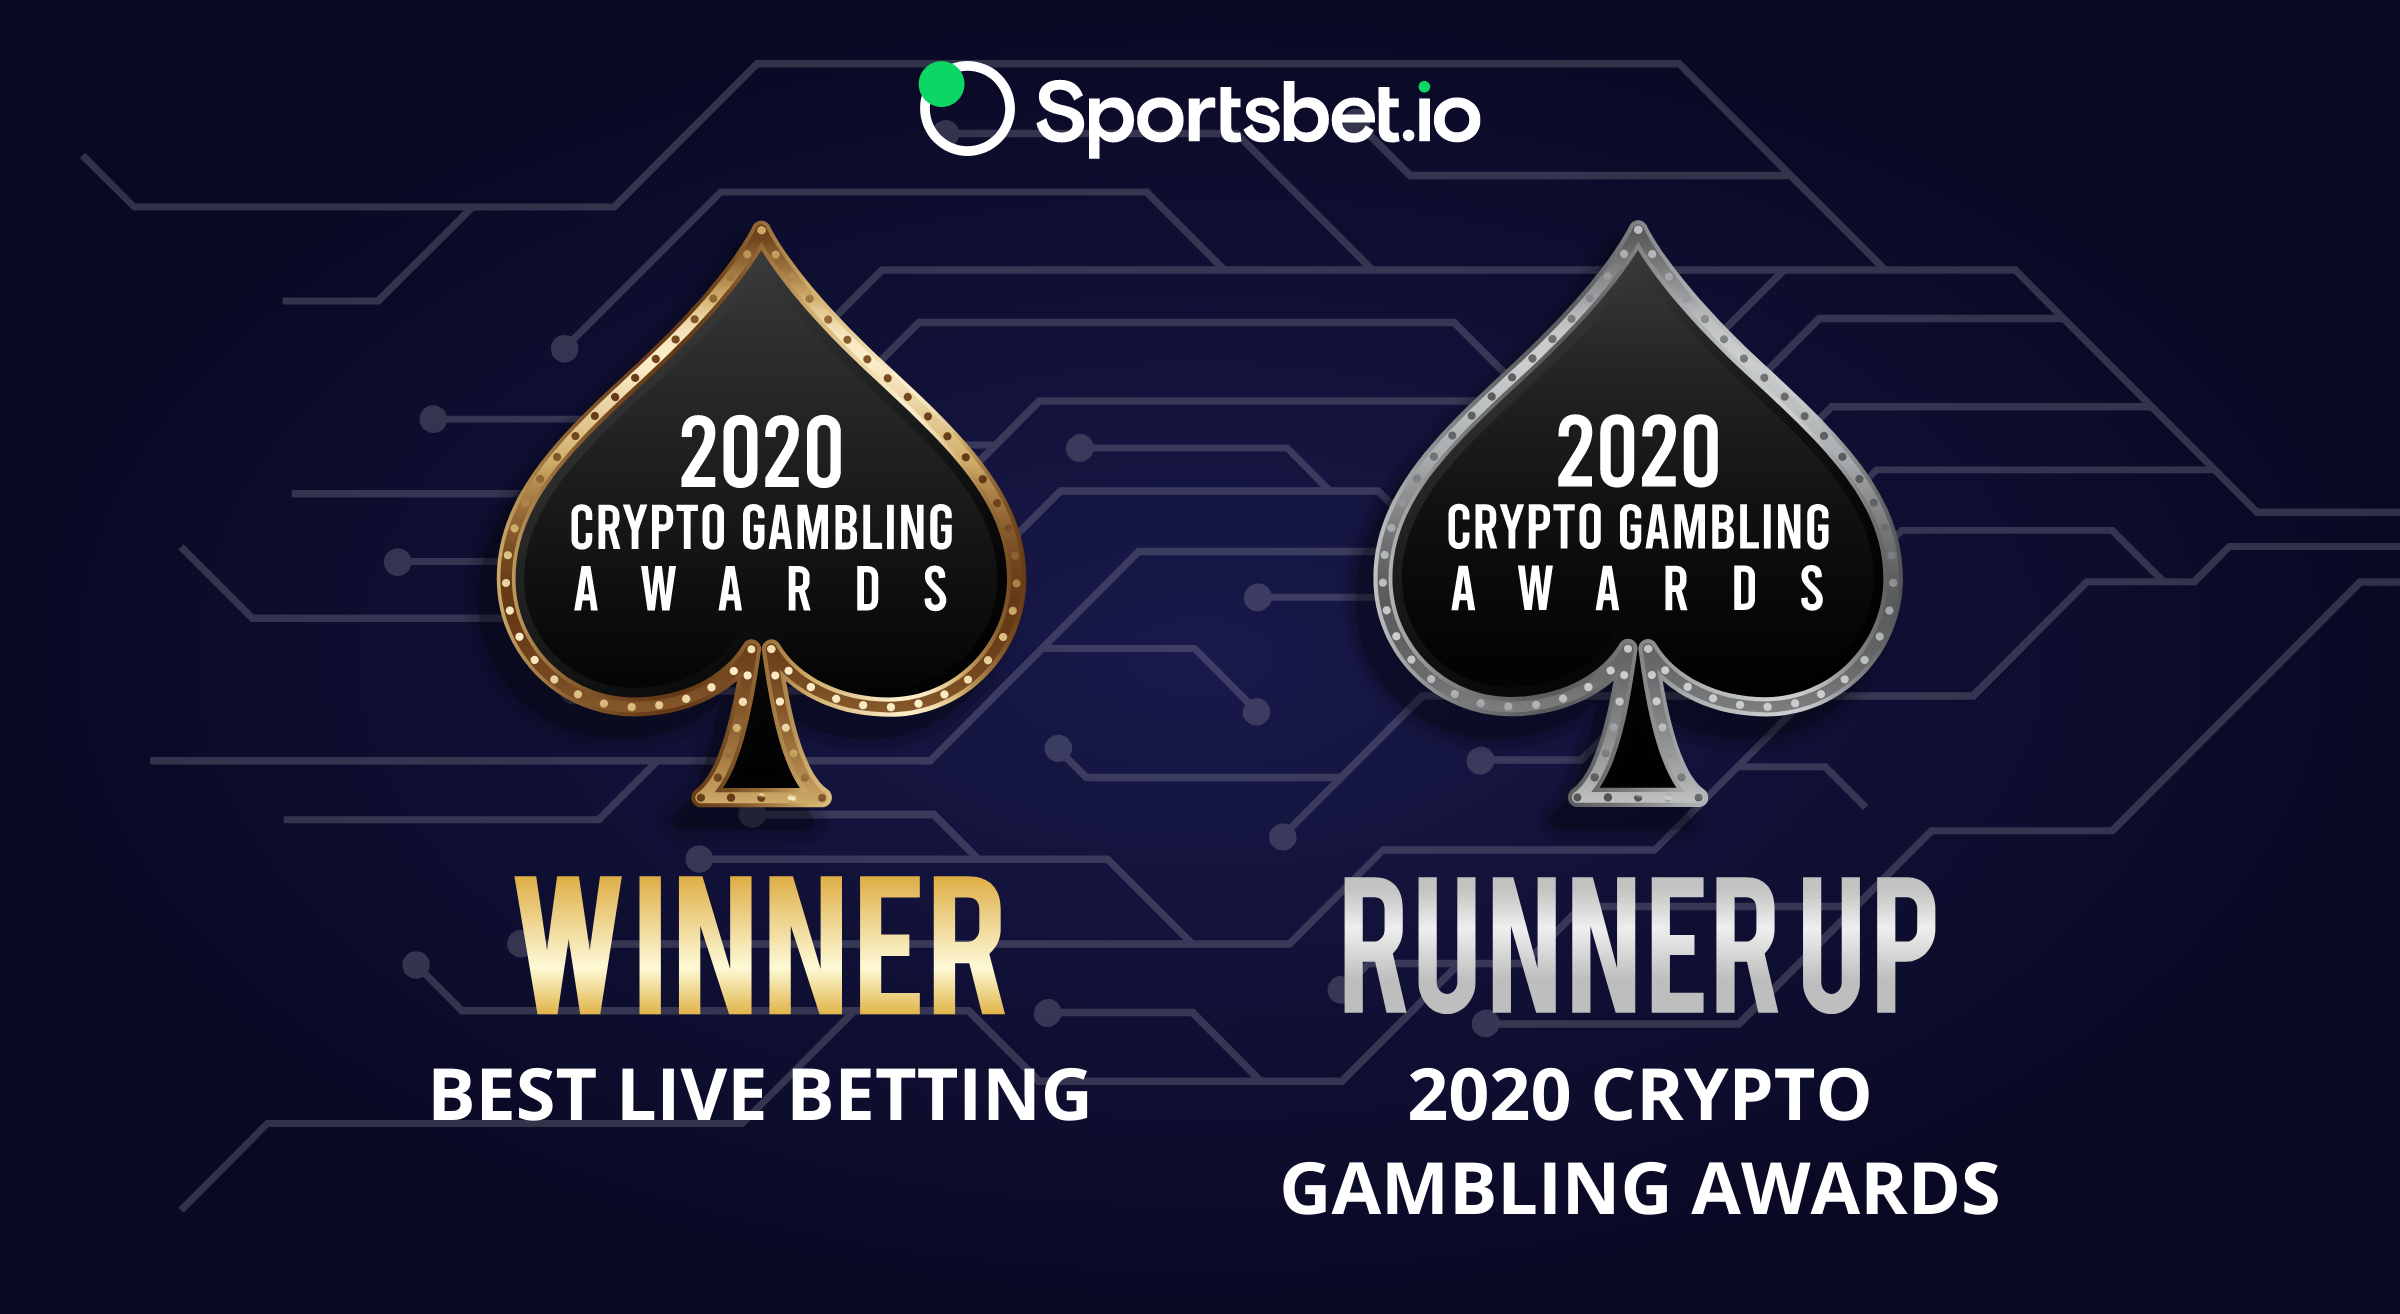 Crypto Gambling Awards won by Sportsbet